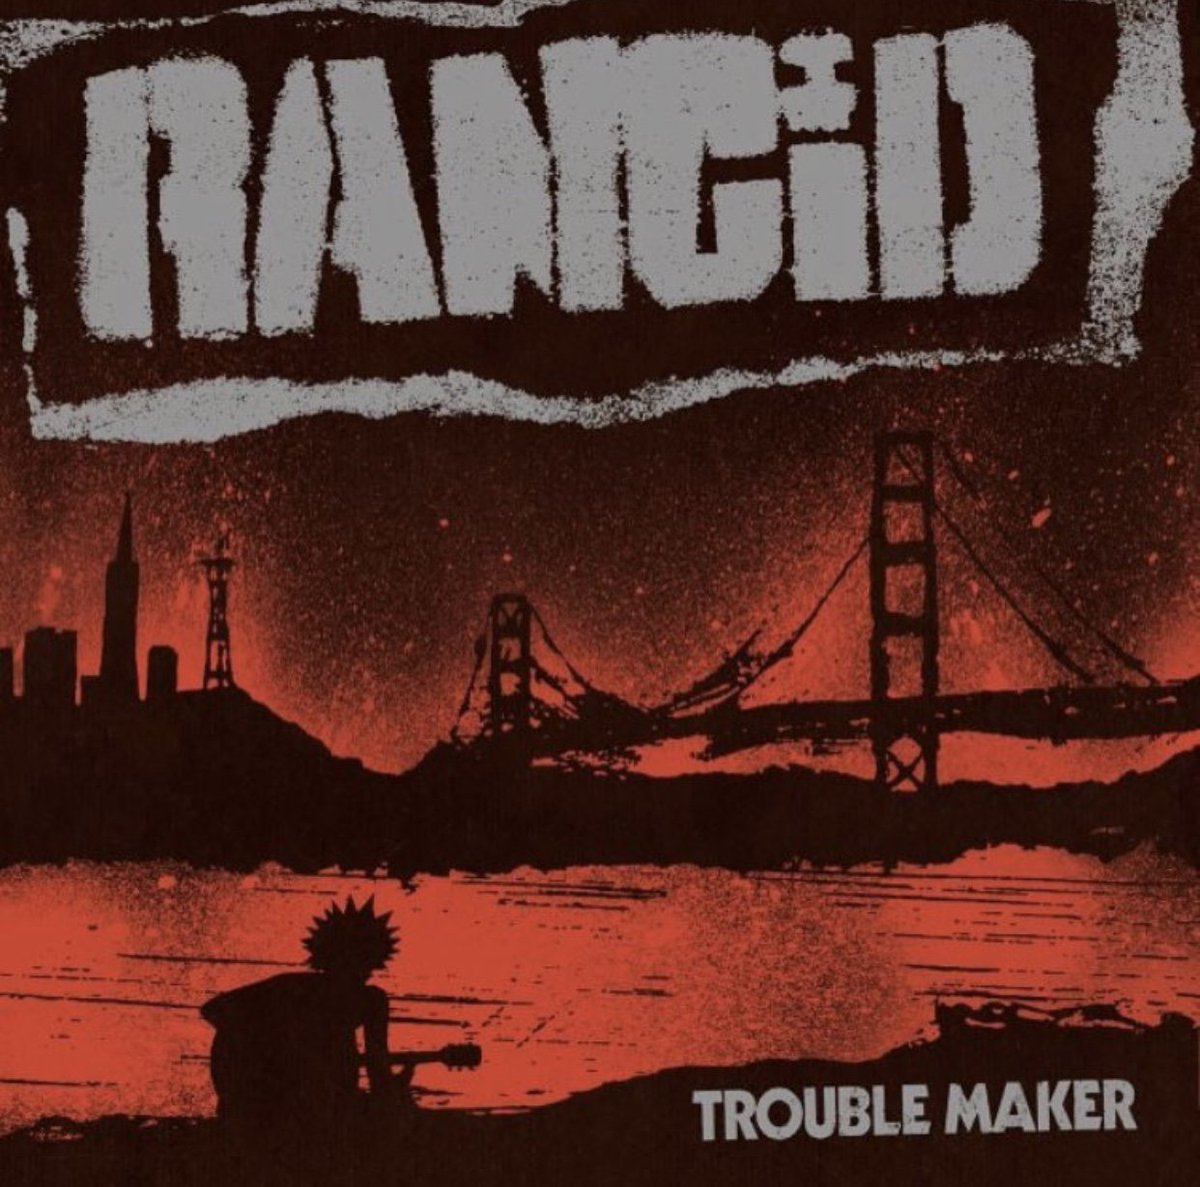 Happy Birthday to Trouble Maker, favorite track?